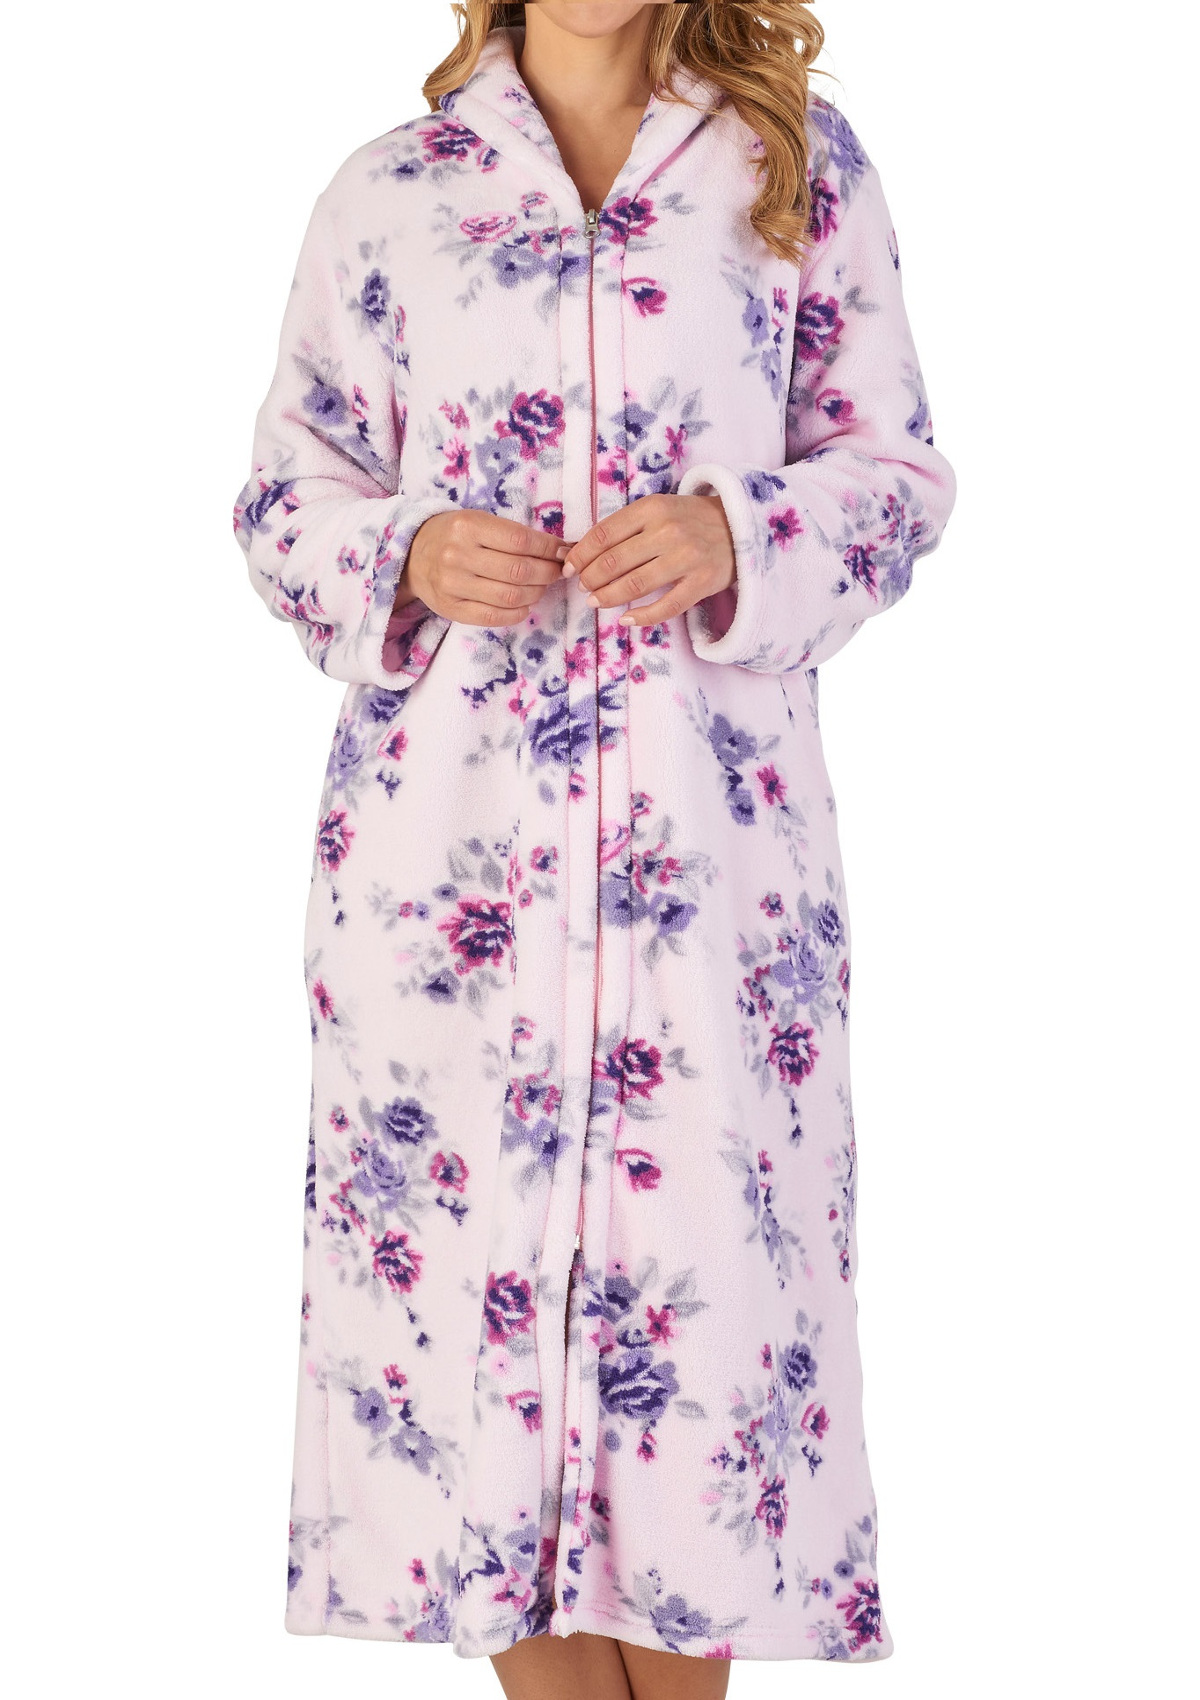 Dressing Gown Womens Floral Zip Up Soft Fleece Bathrobe Slenderella  Housecoat cc8117003